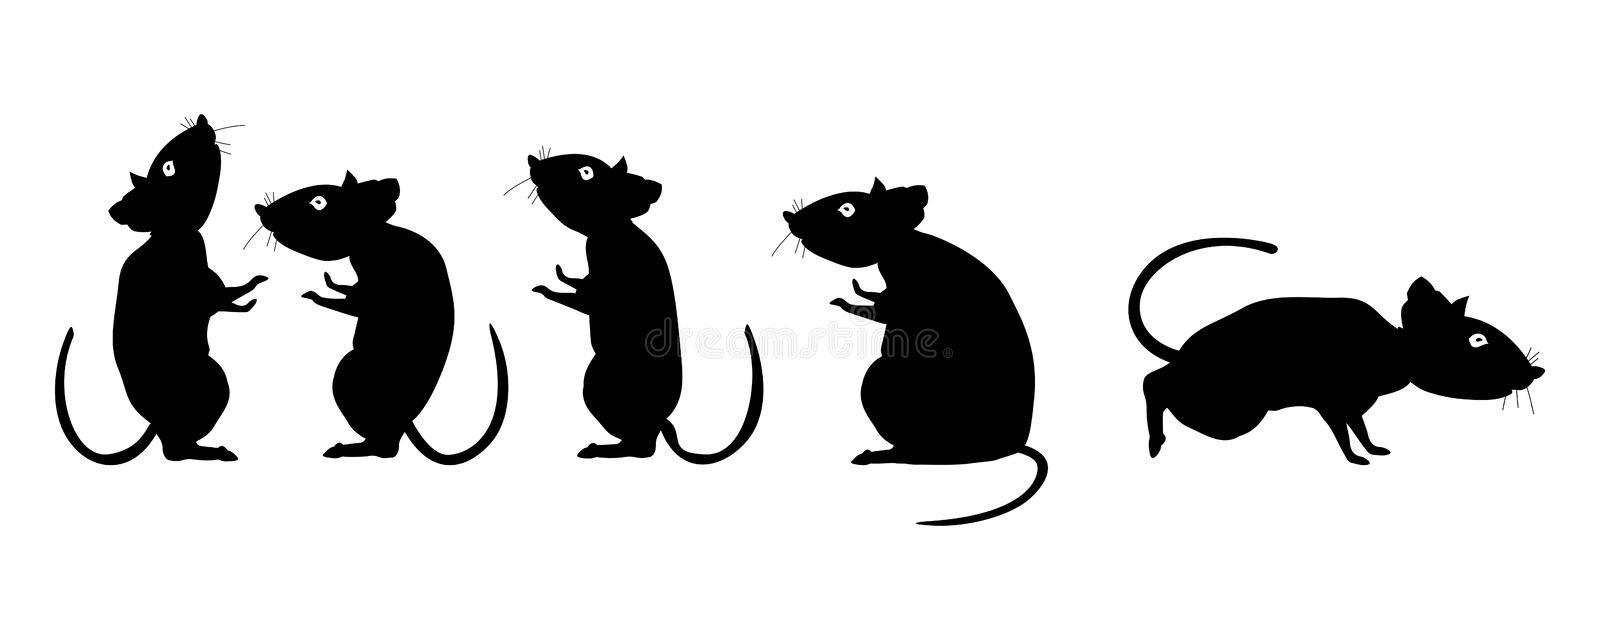 Rat is a symbol of the new year 2020. Cartoon silhouettes of rodents on a white background. Flat  illustration EPS10 royalty free illustration